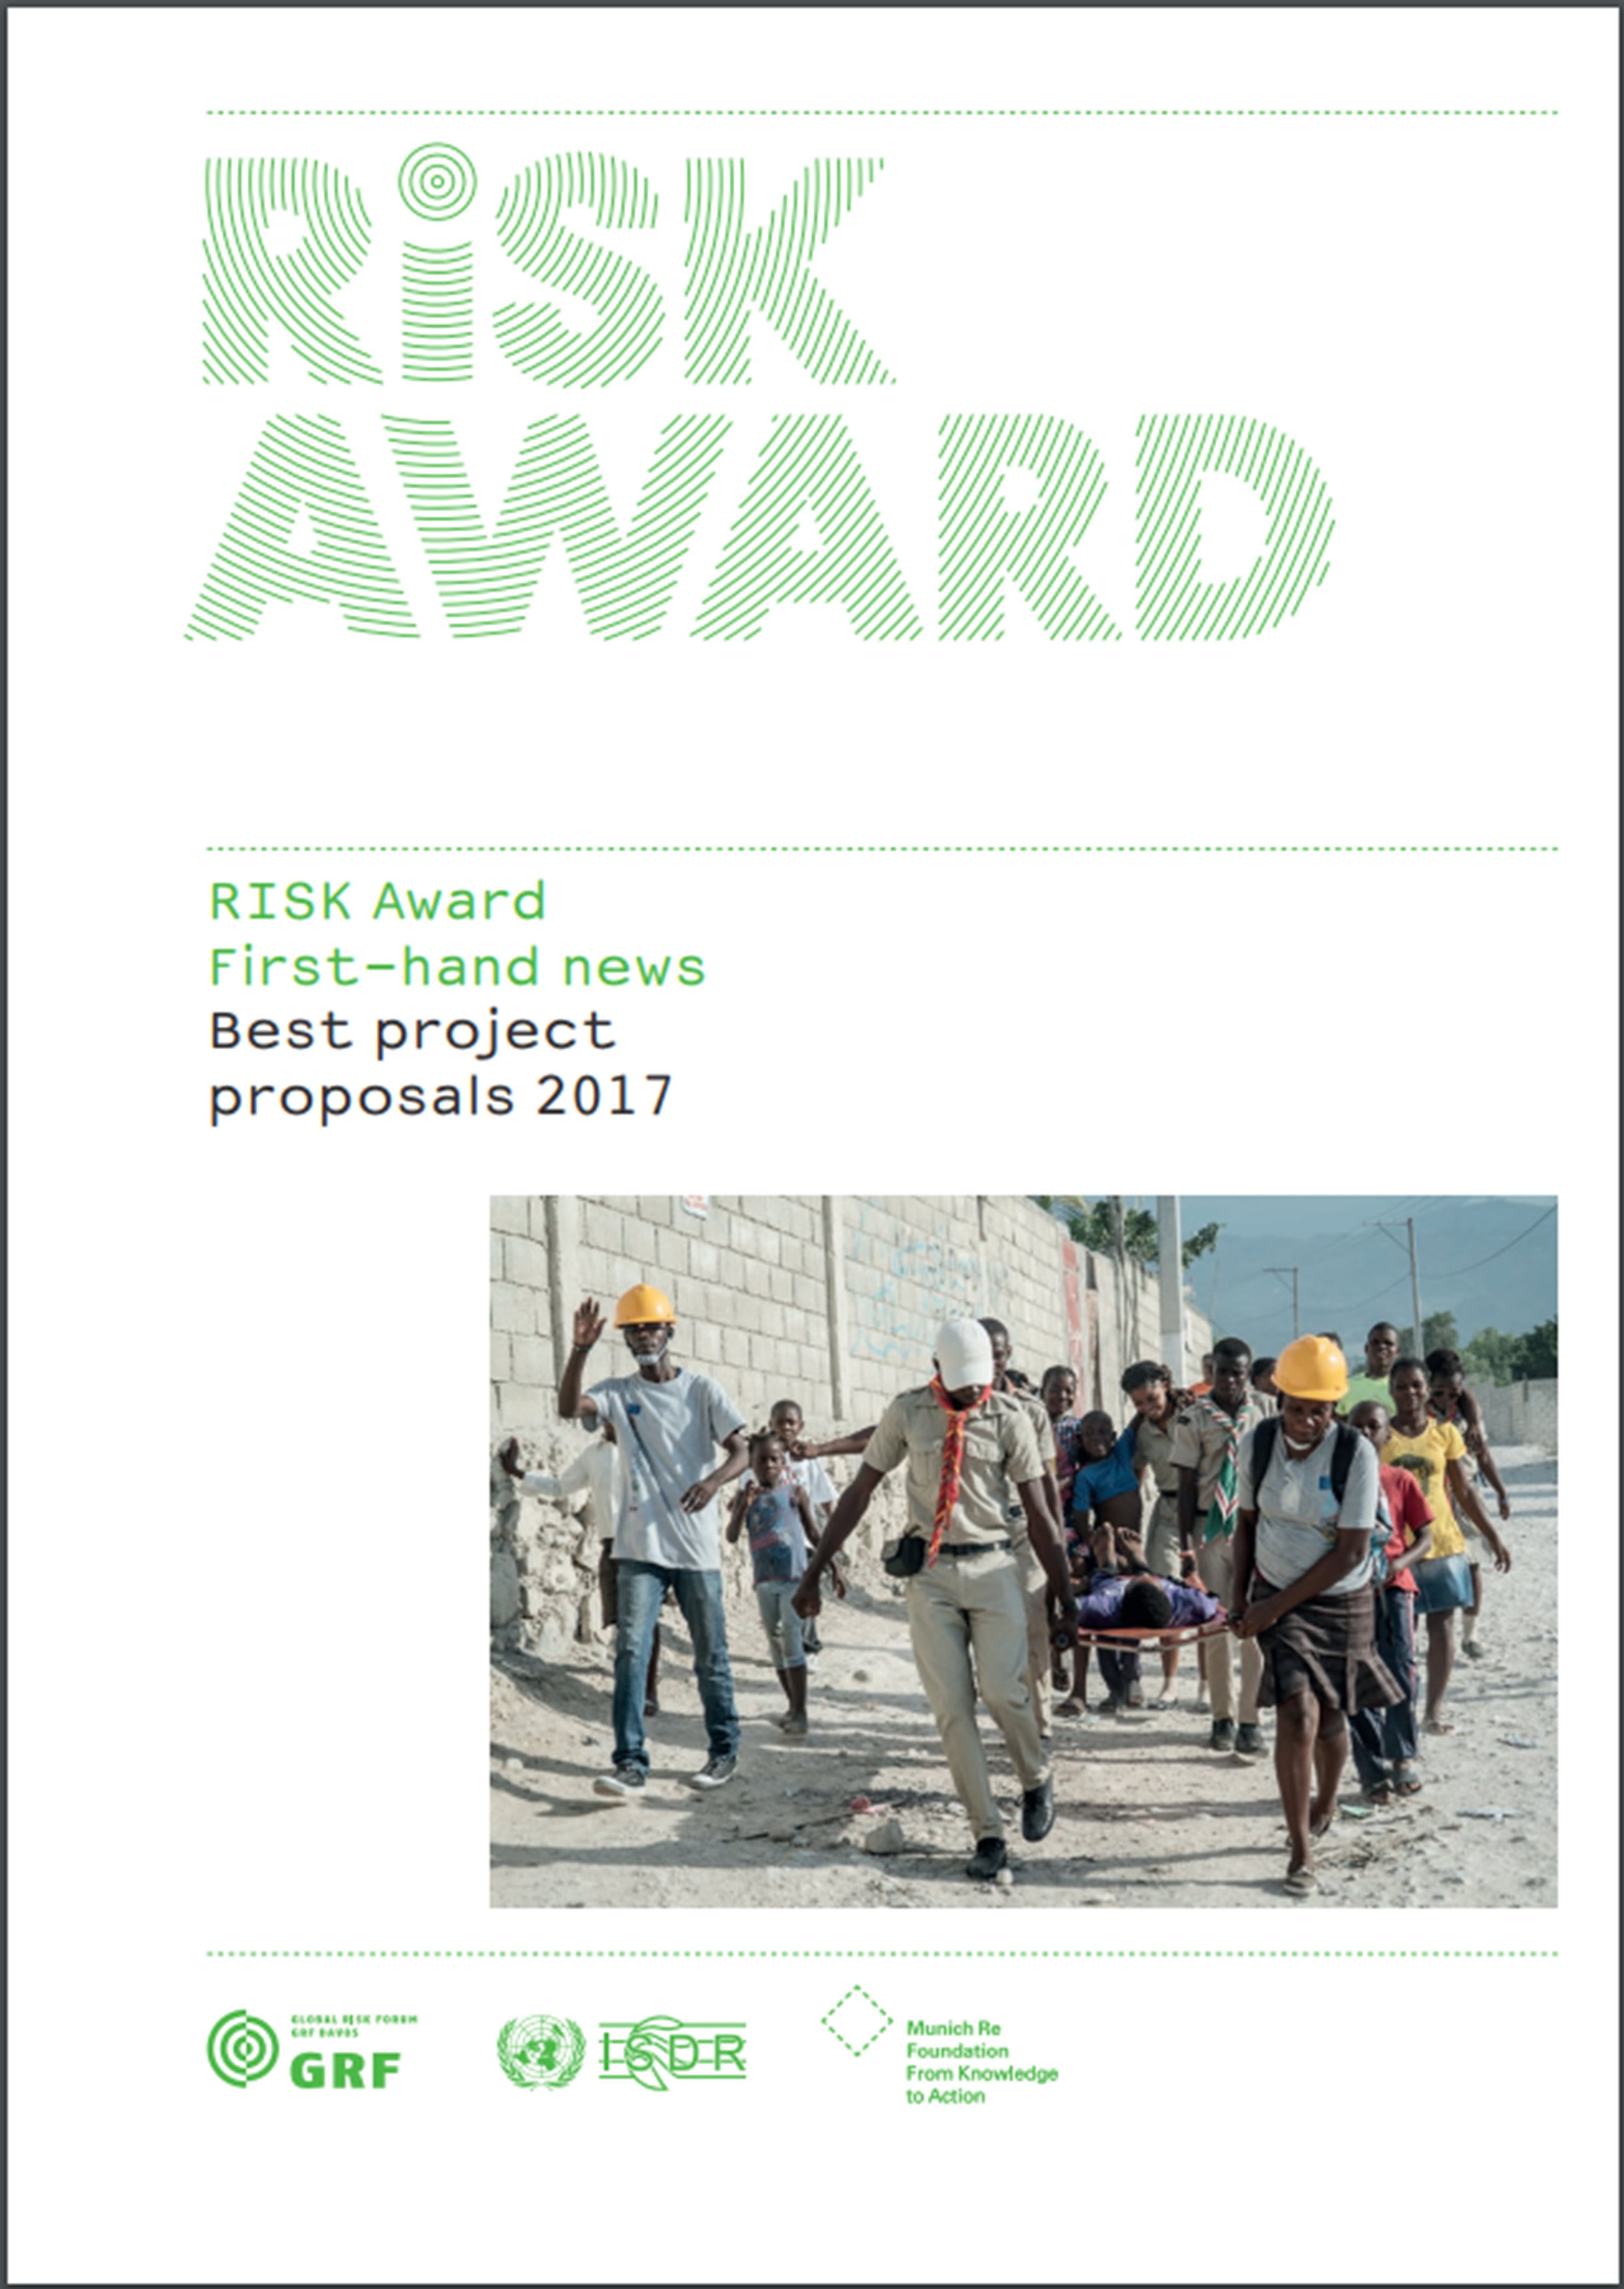 2017 RISK Award: First-Hand News